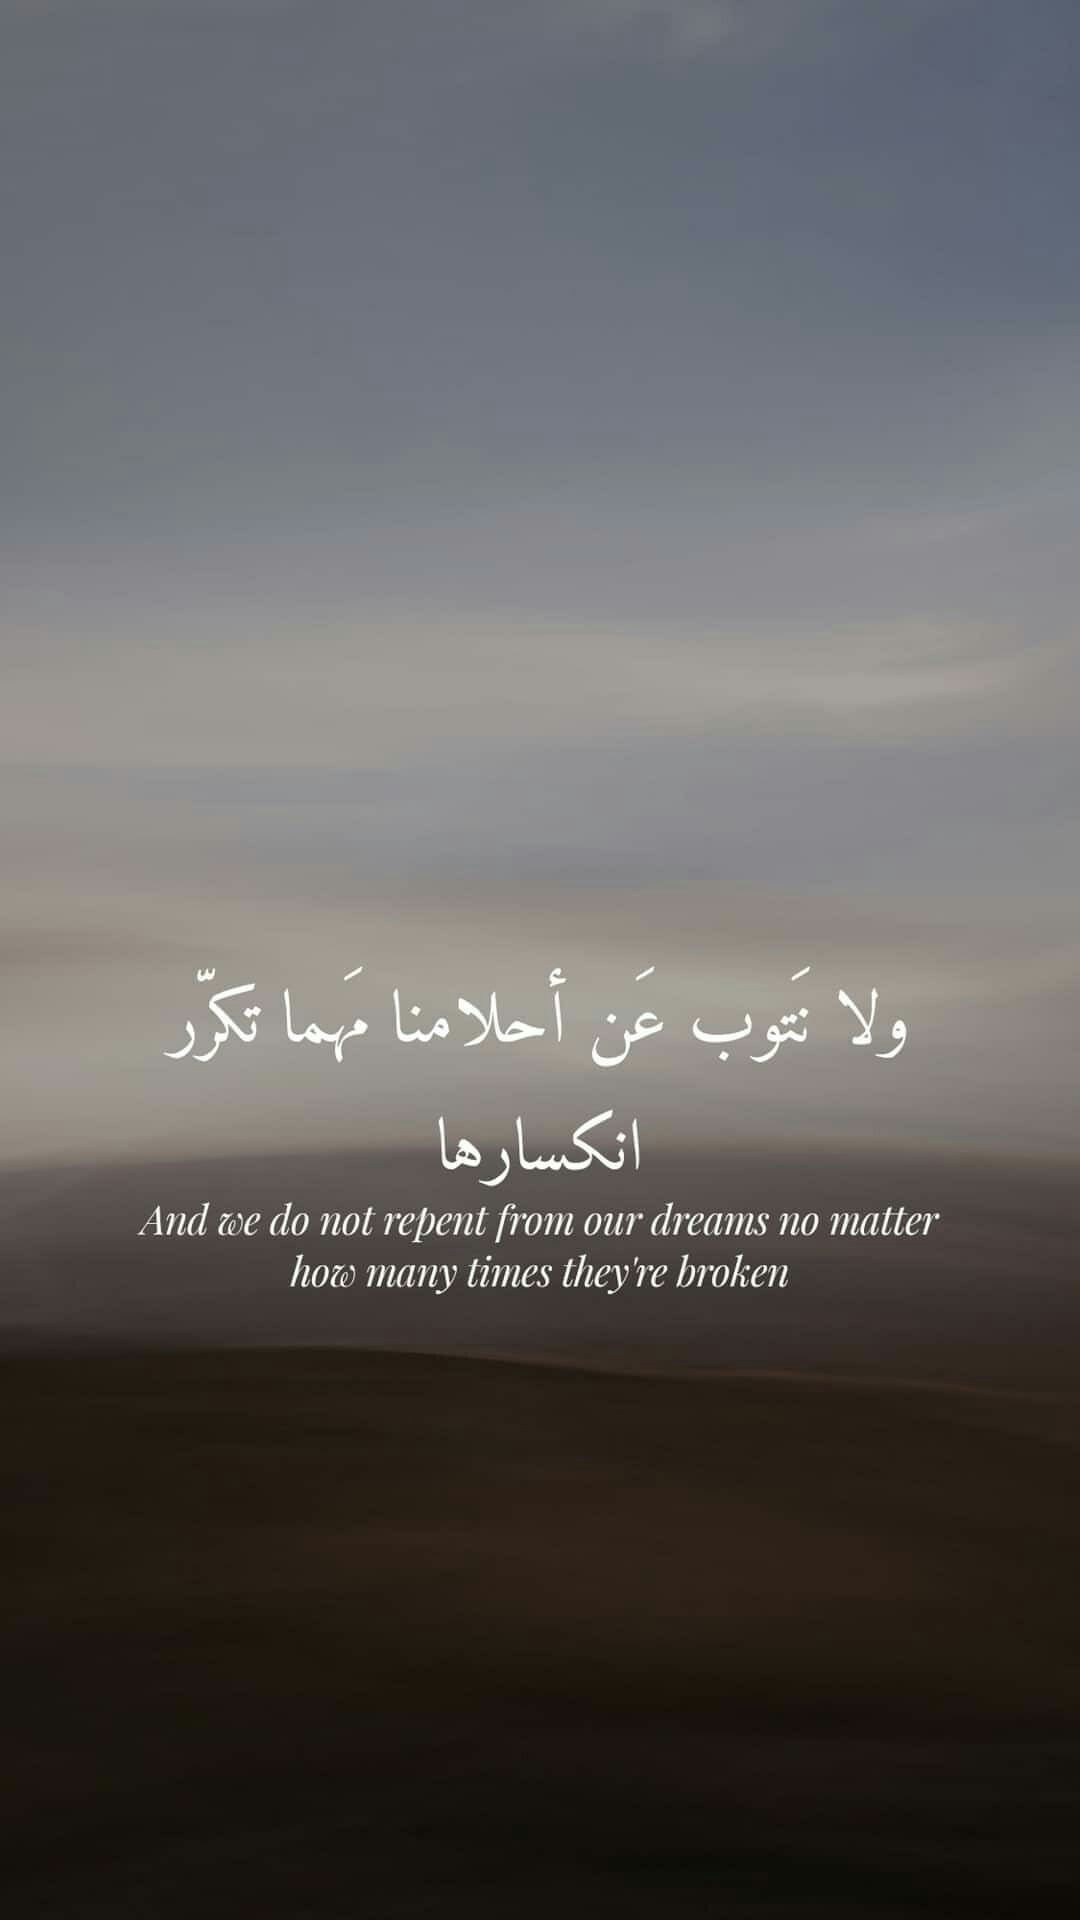 Pin By Eslam Roaia El Sayed On محمود درويش Beautiful Quran Quotes Love Quotes For Wife Good Life Quotes